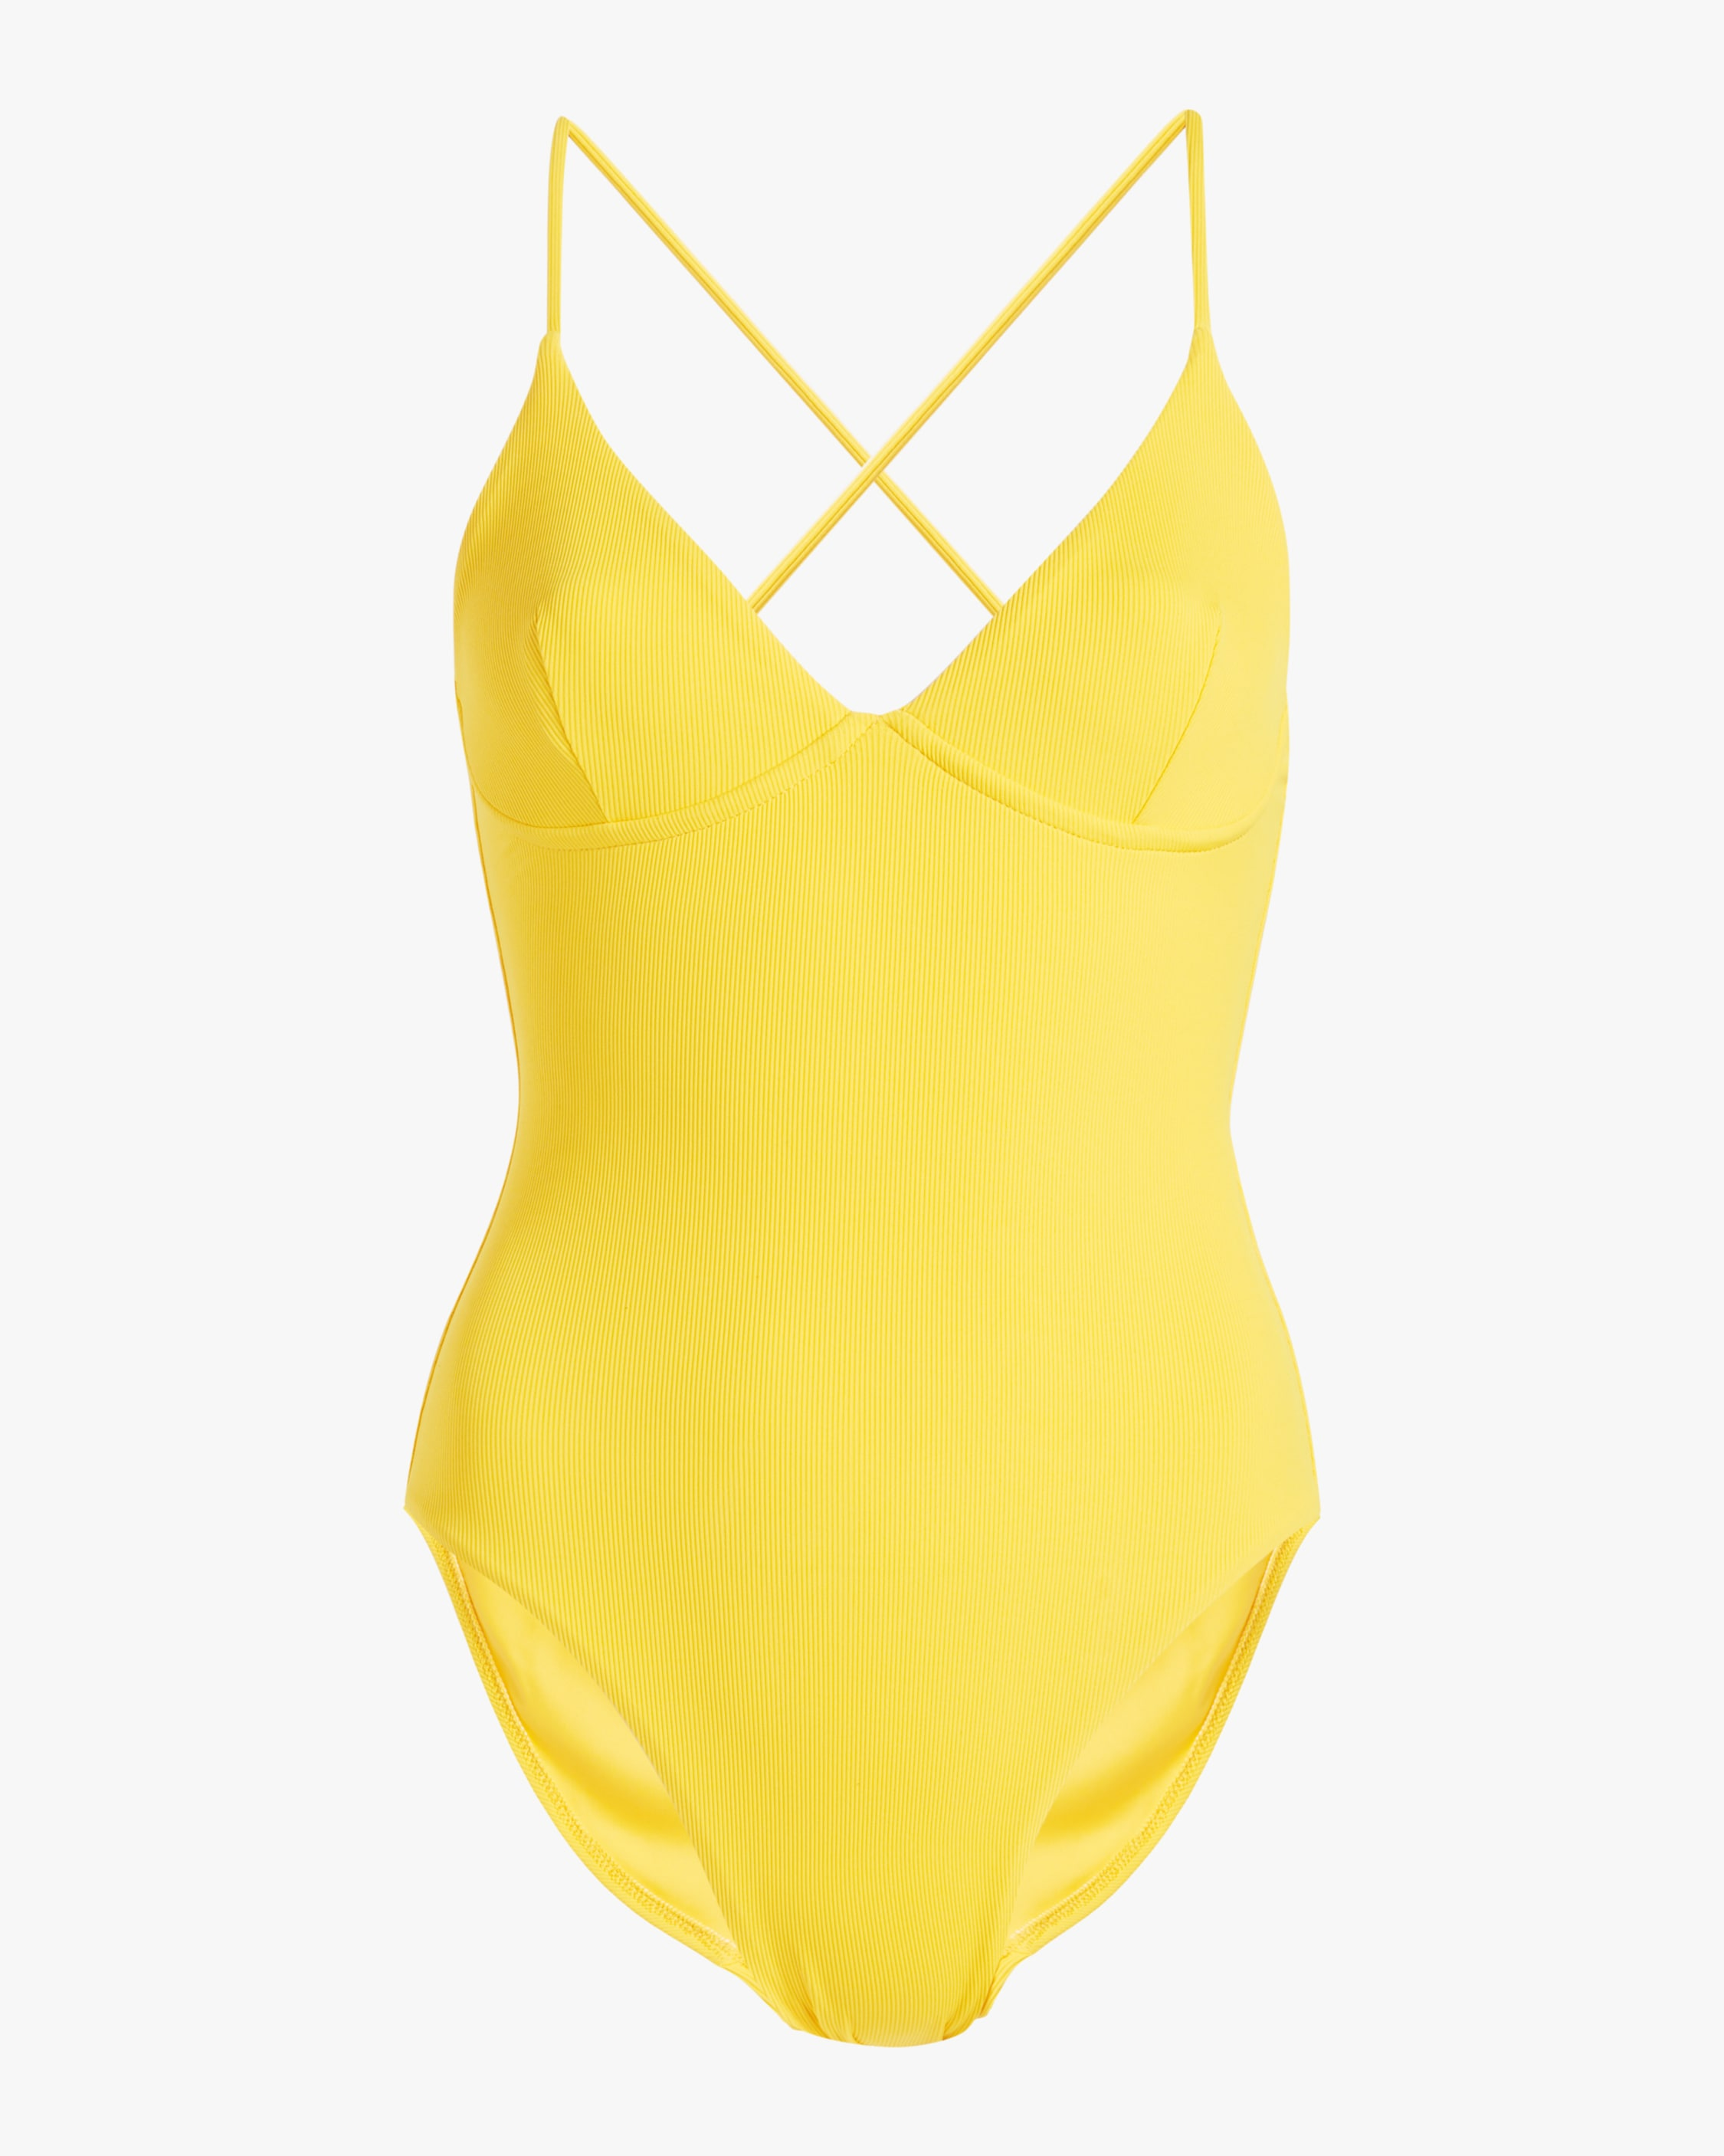 Les Girls Les Boys RIB UNDERWIRED ONE PIECE SWIMSUIT